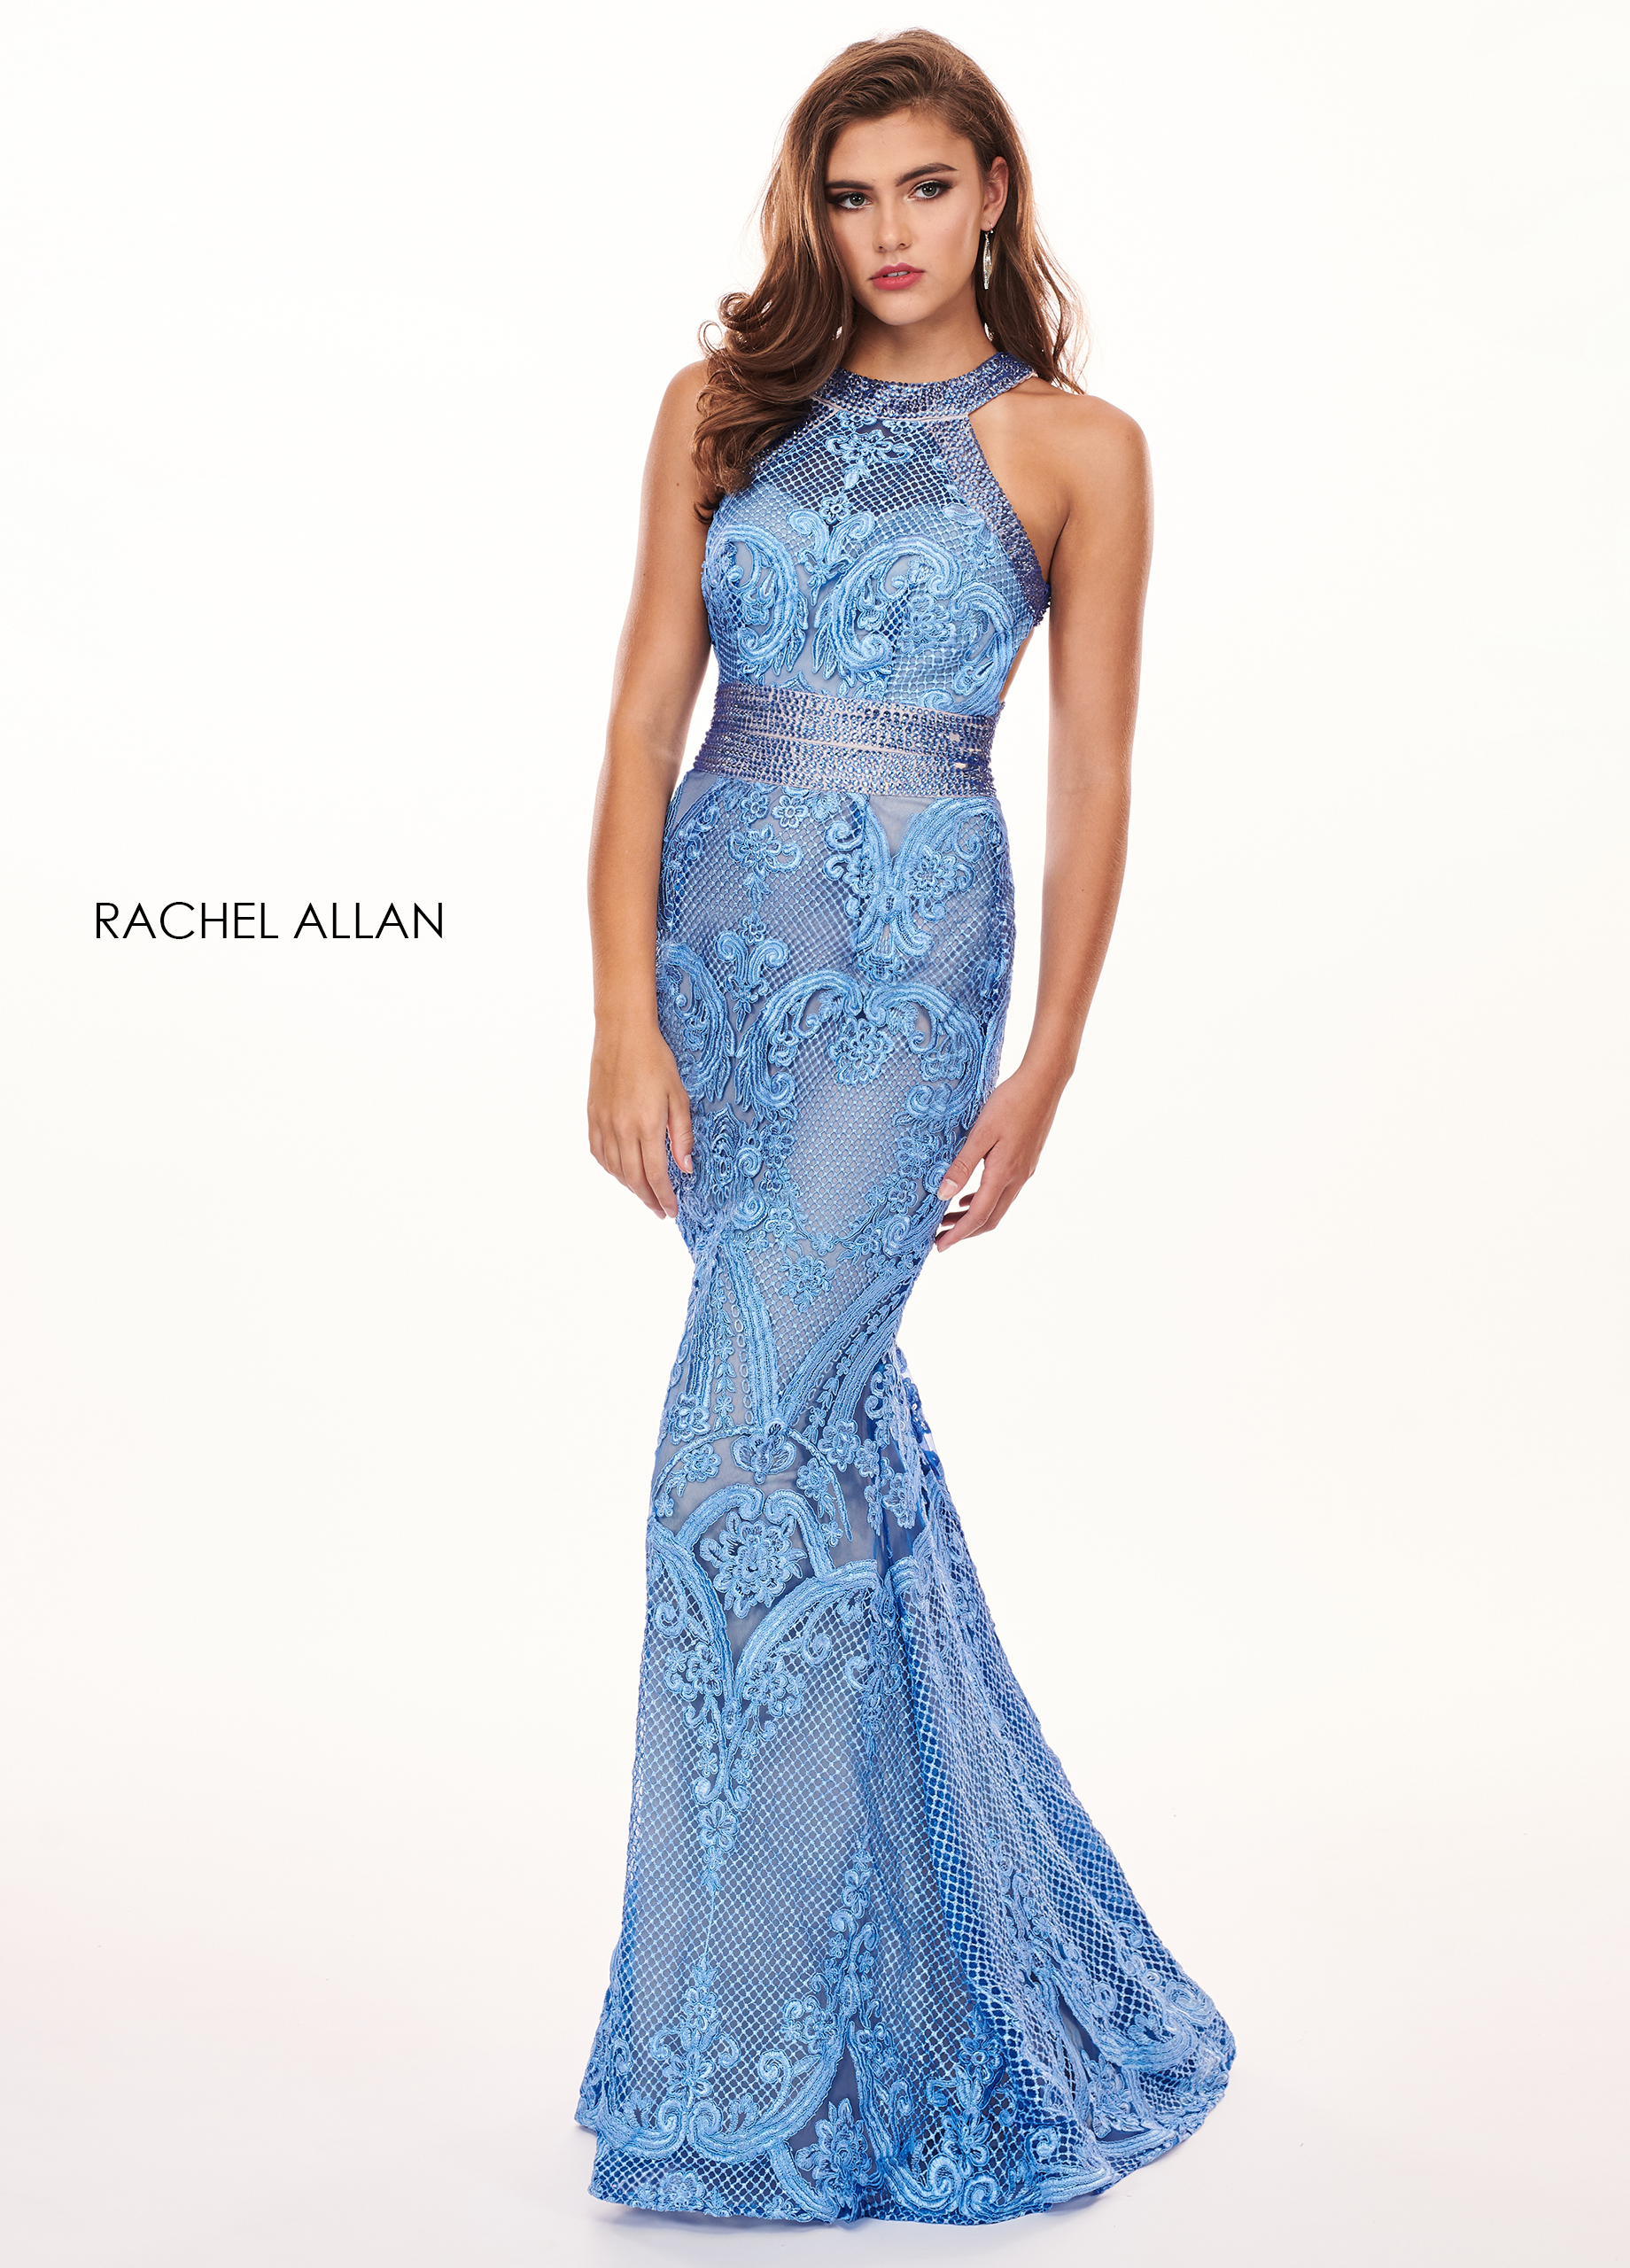 Halter Fit & Flare Prom Dresses in Turquoise Color